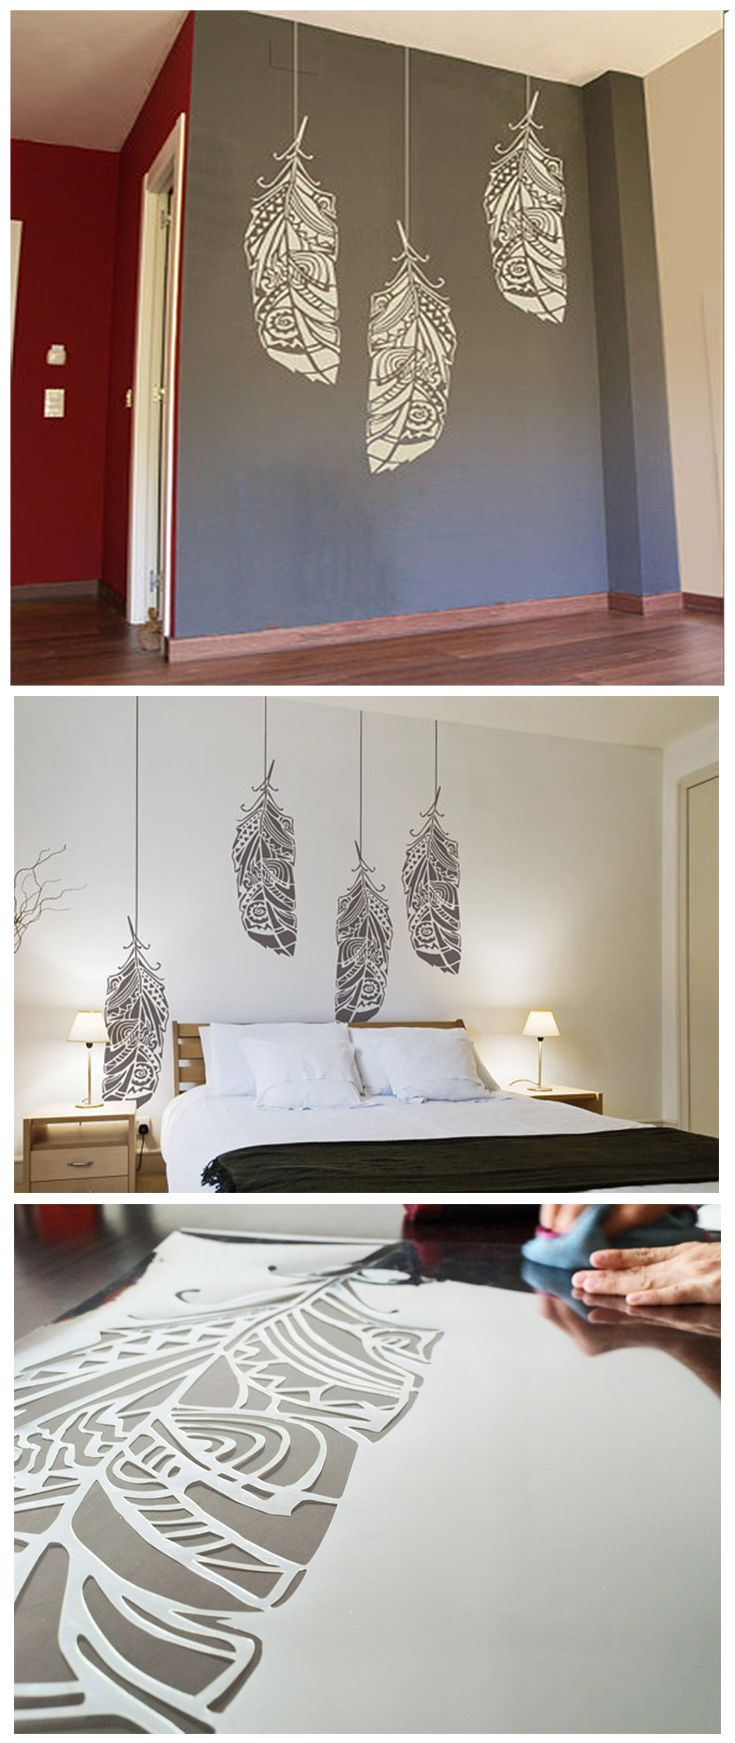 Simple bedroom wall paint designs - Feather Stencil Ethnic Decor Element For Wall Furniture Or Textile Painting Ideas For